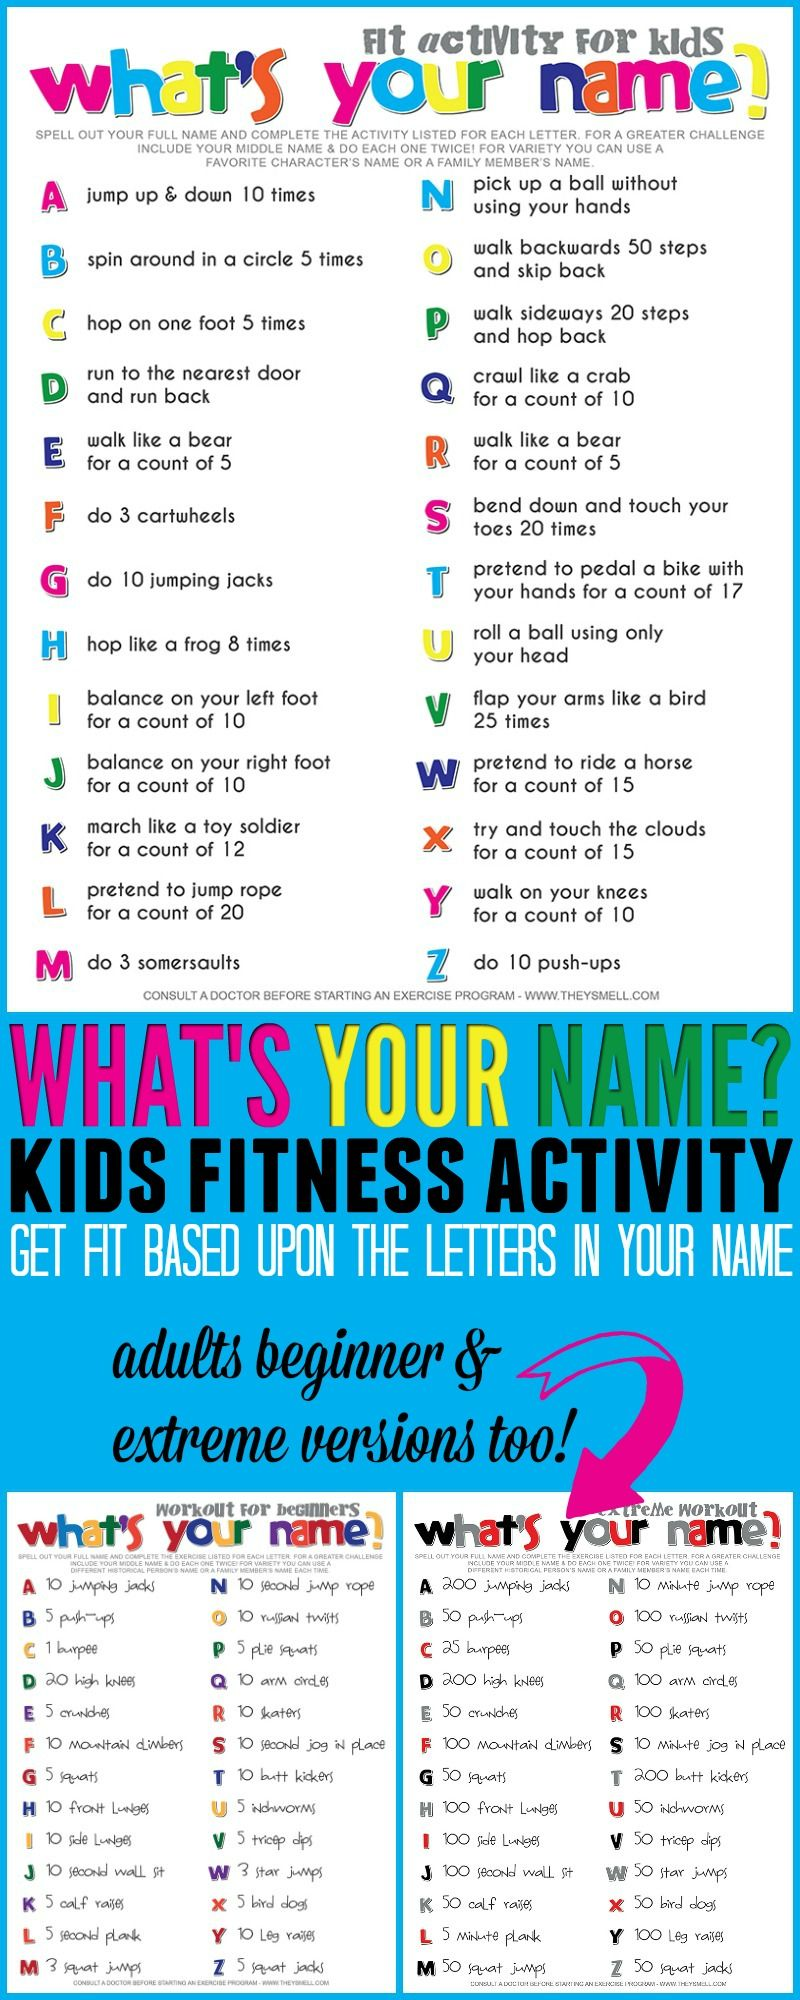 What's Your Name? Fitness Activity Printable for Kids | Fitness ...